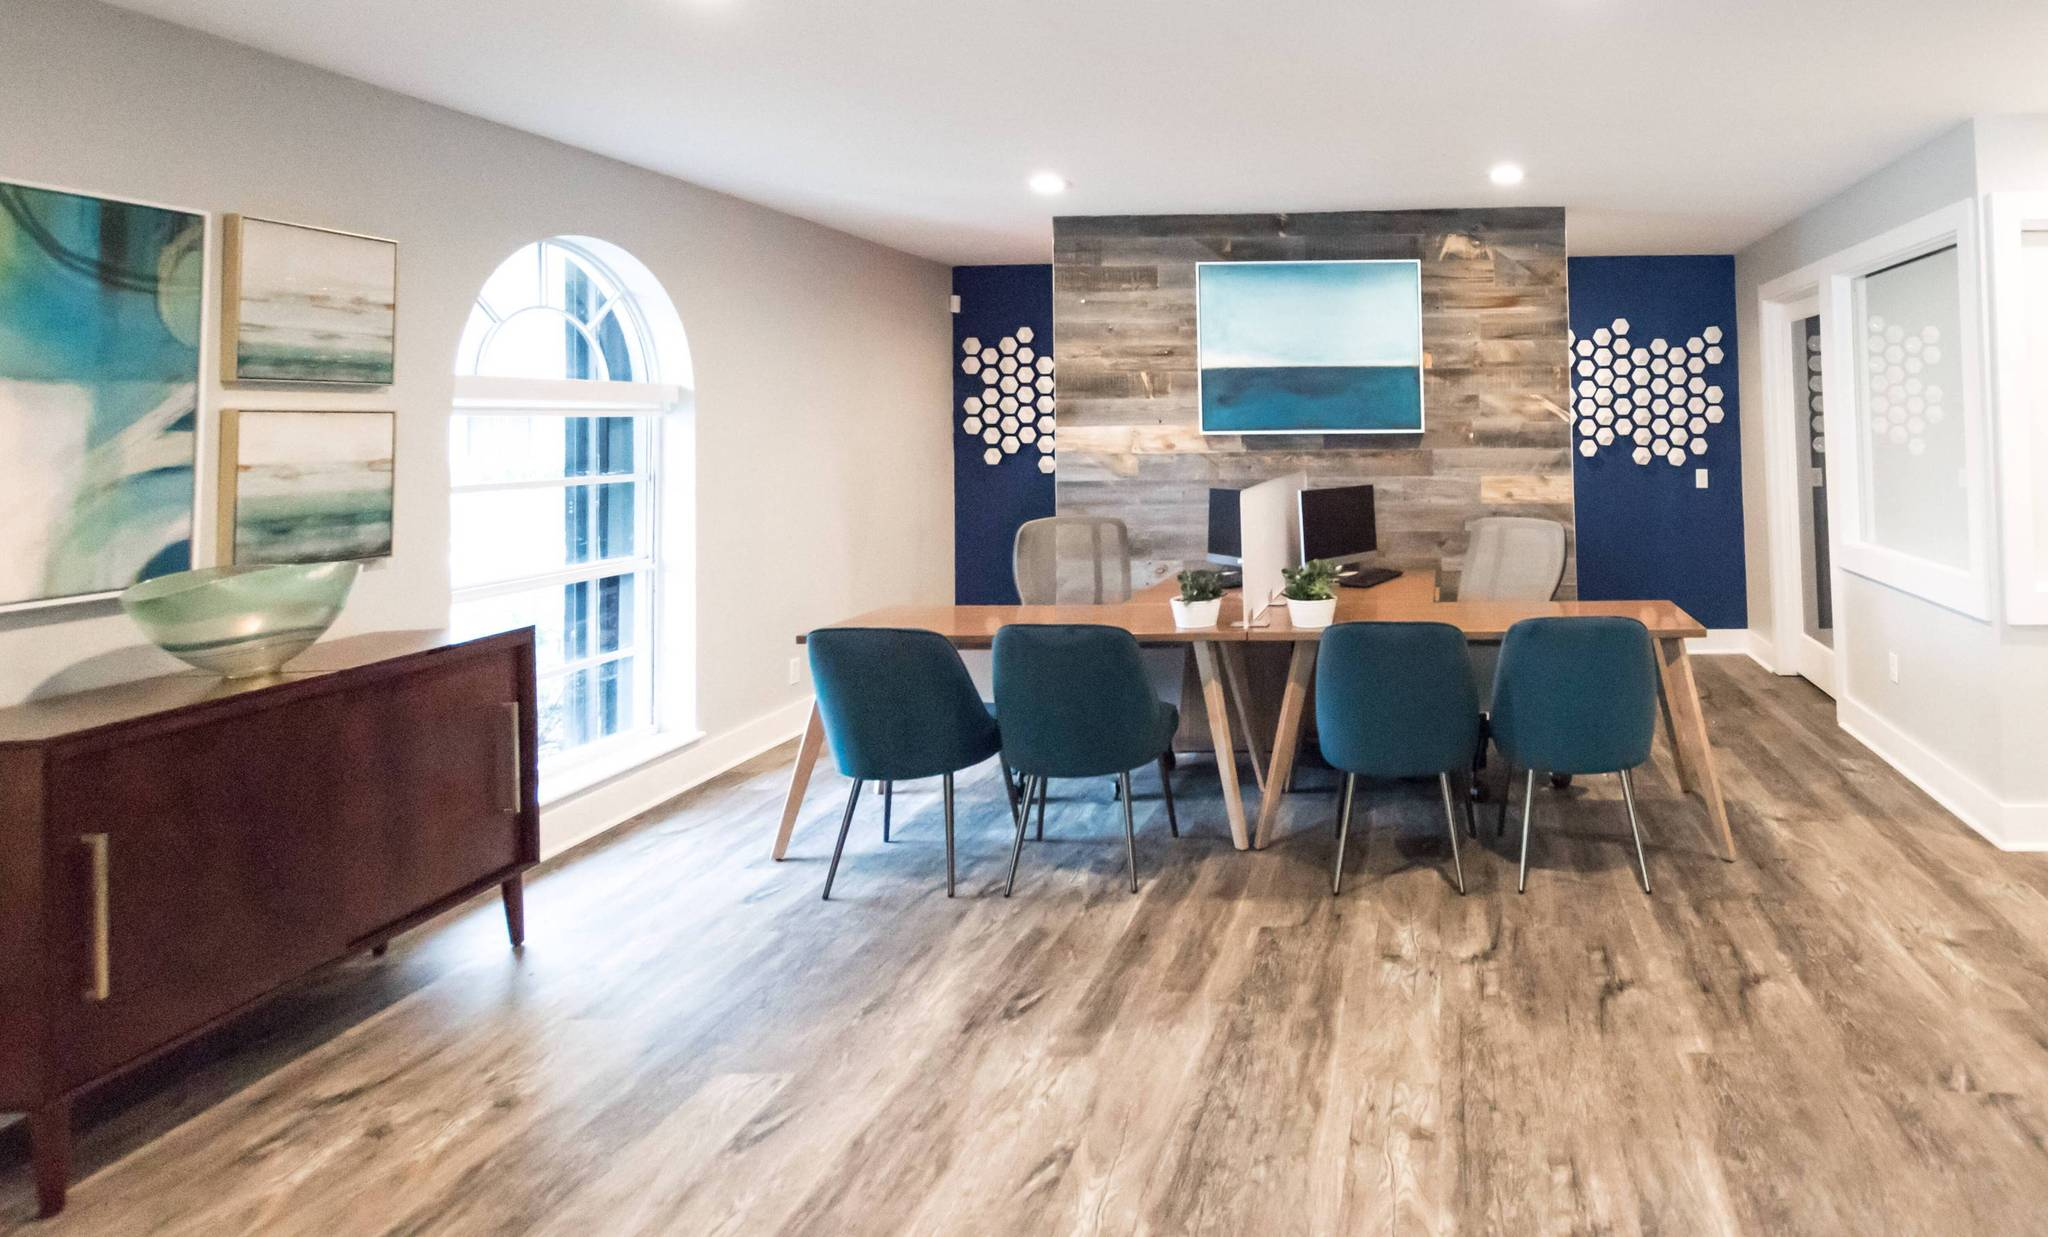 Natalia Chinea Designs created this midcentury modern open office with a Stikwood reclaimed weathered barn wood accent wall.